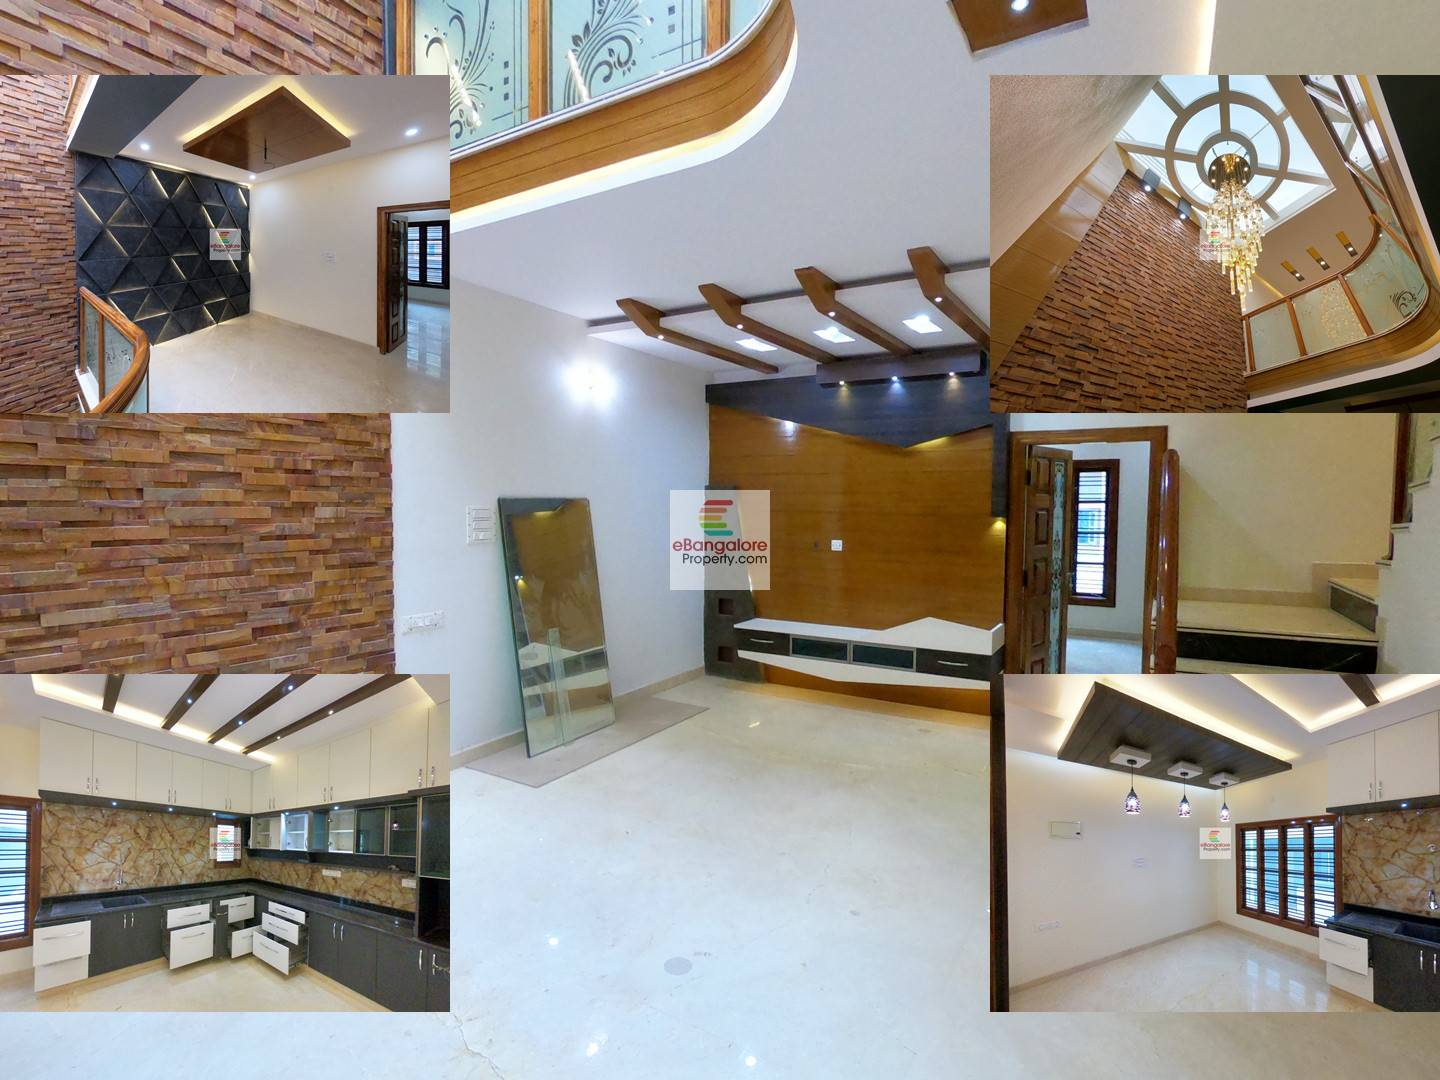 Sunkadakatte – 3BHK Royal Bungalow For Sale – With Home Theater and Gym